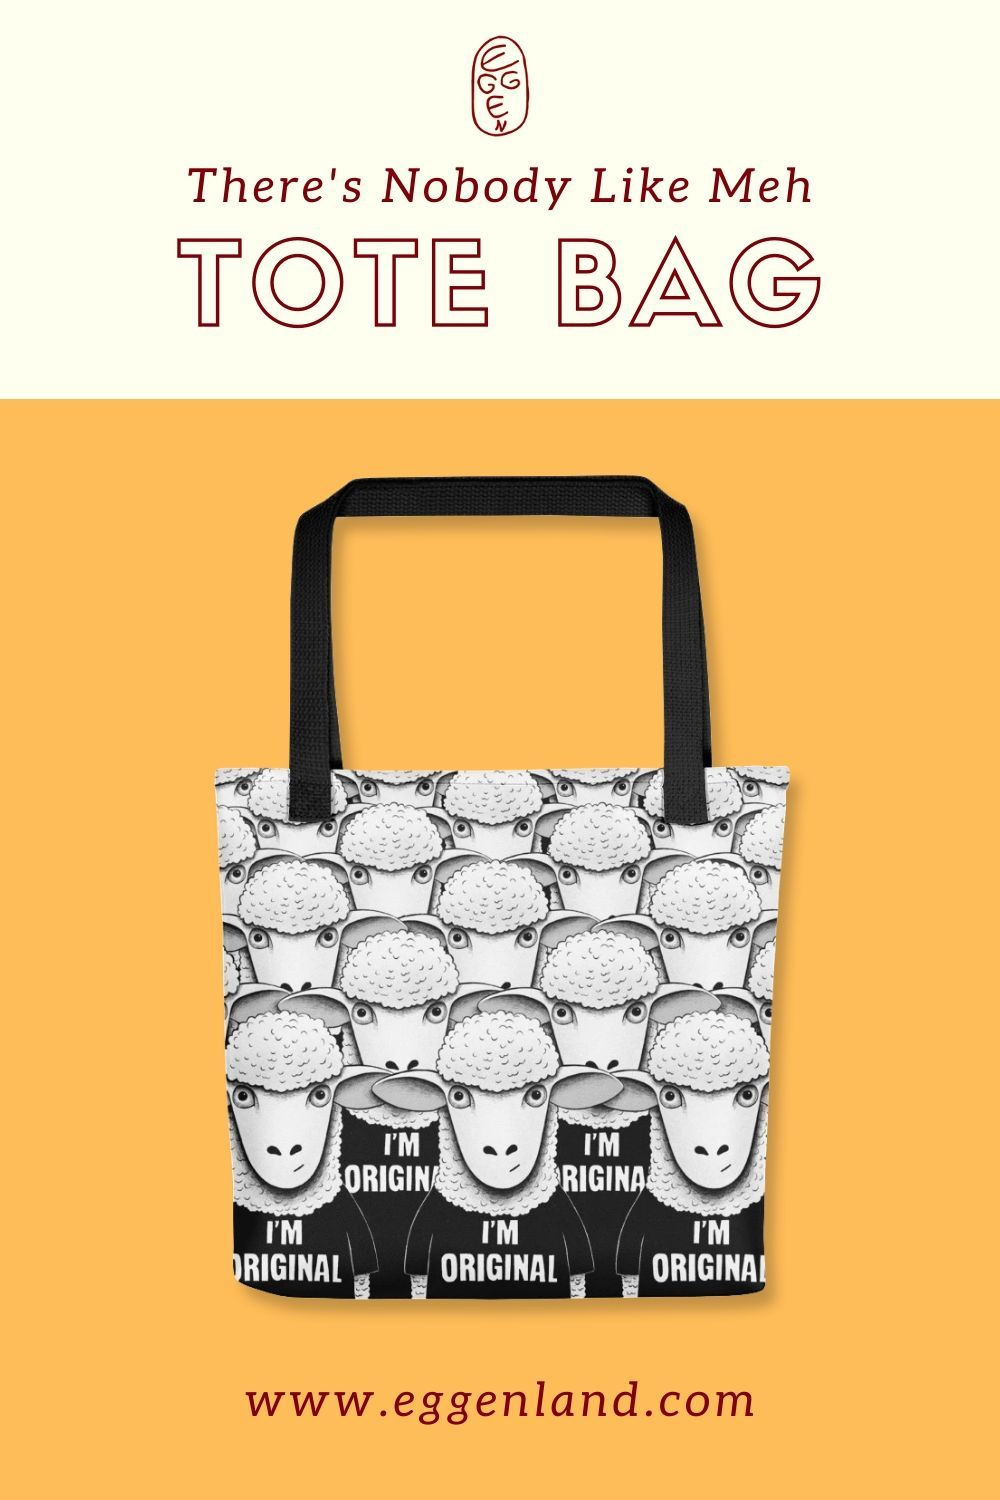 Sheep Original | Illustrated Tote Bags for Sale | #sheep #fashion #funnyanimals #coolanimals #bags #totebags #coolfashion #outfits summer outfits, outfit ideas, fashion accessories, women's fashion, creative bags, funny bags, funny tote bags